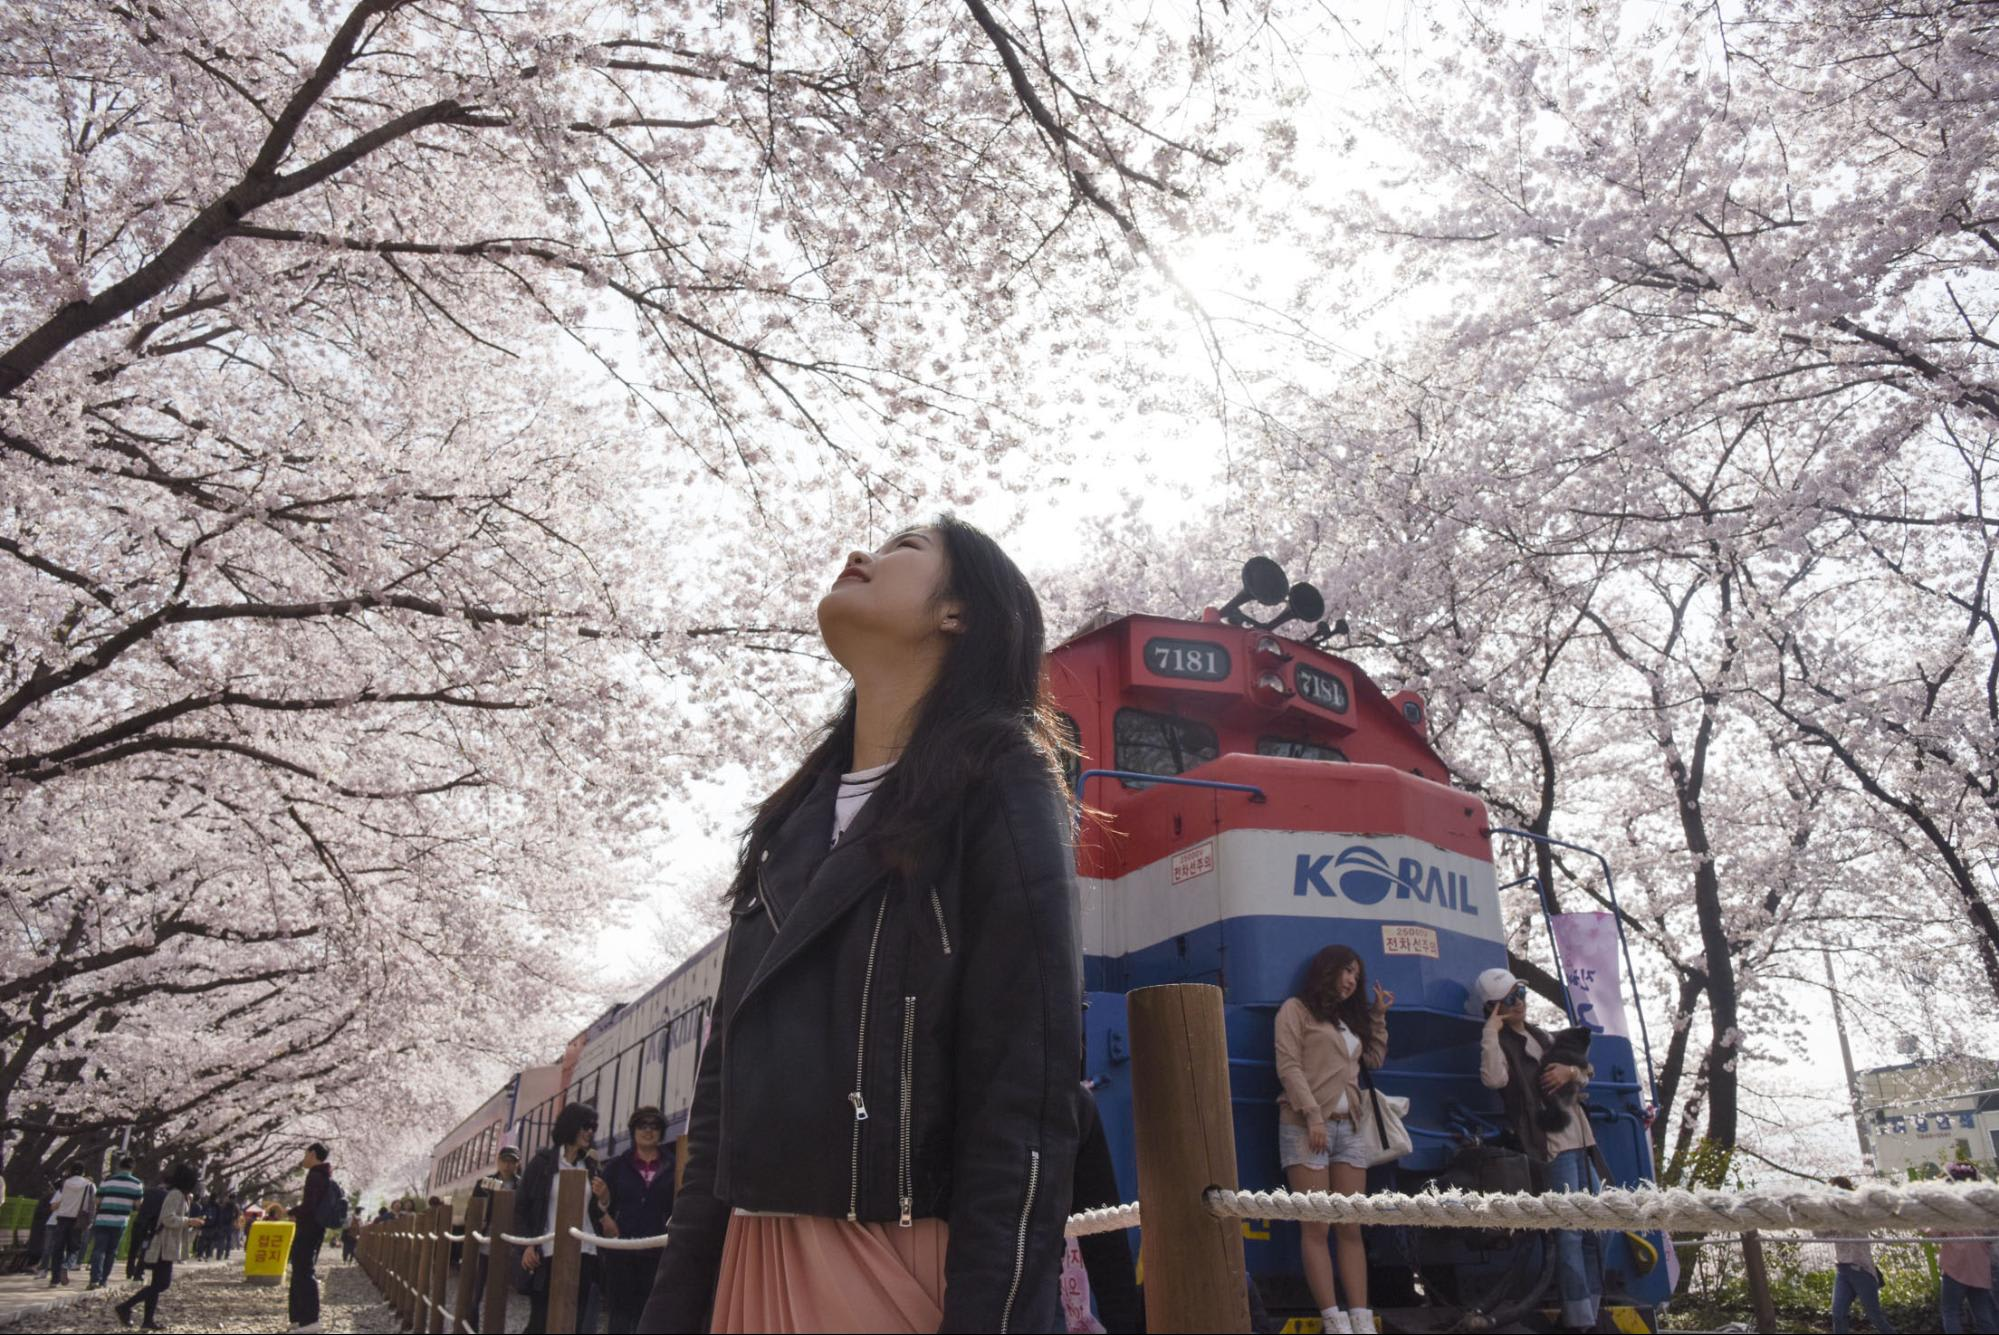 Gyeonghwa Rail train under the cherry blossoms